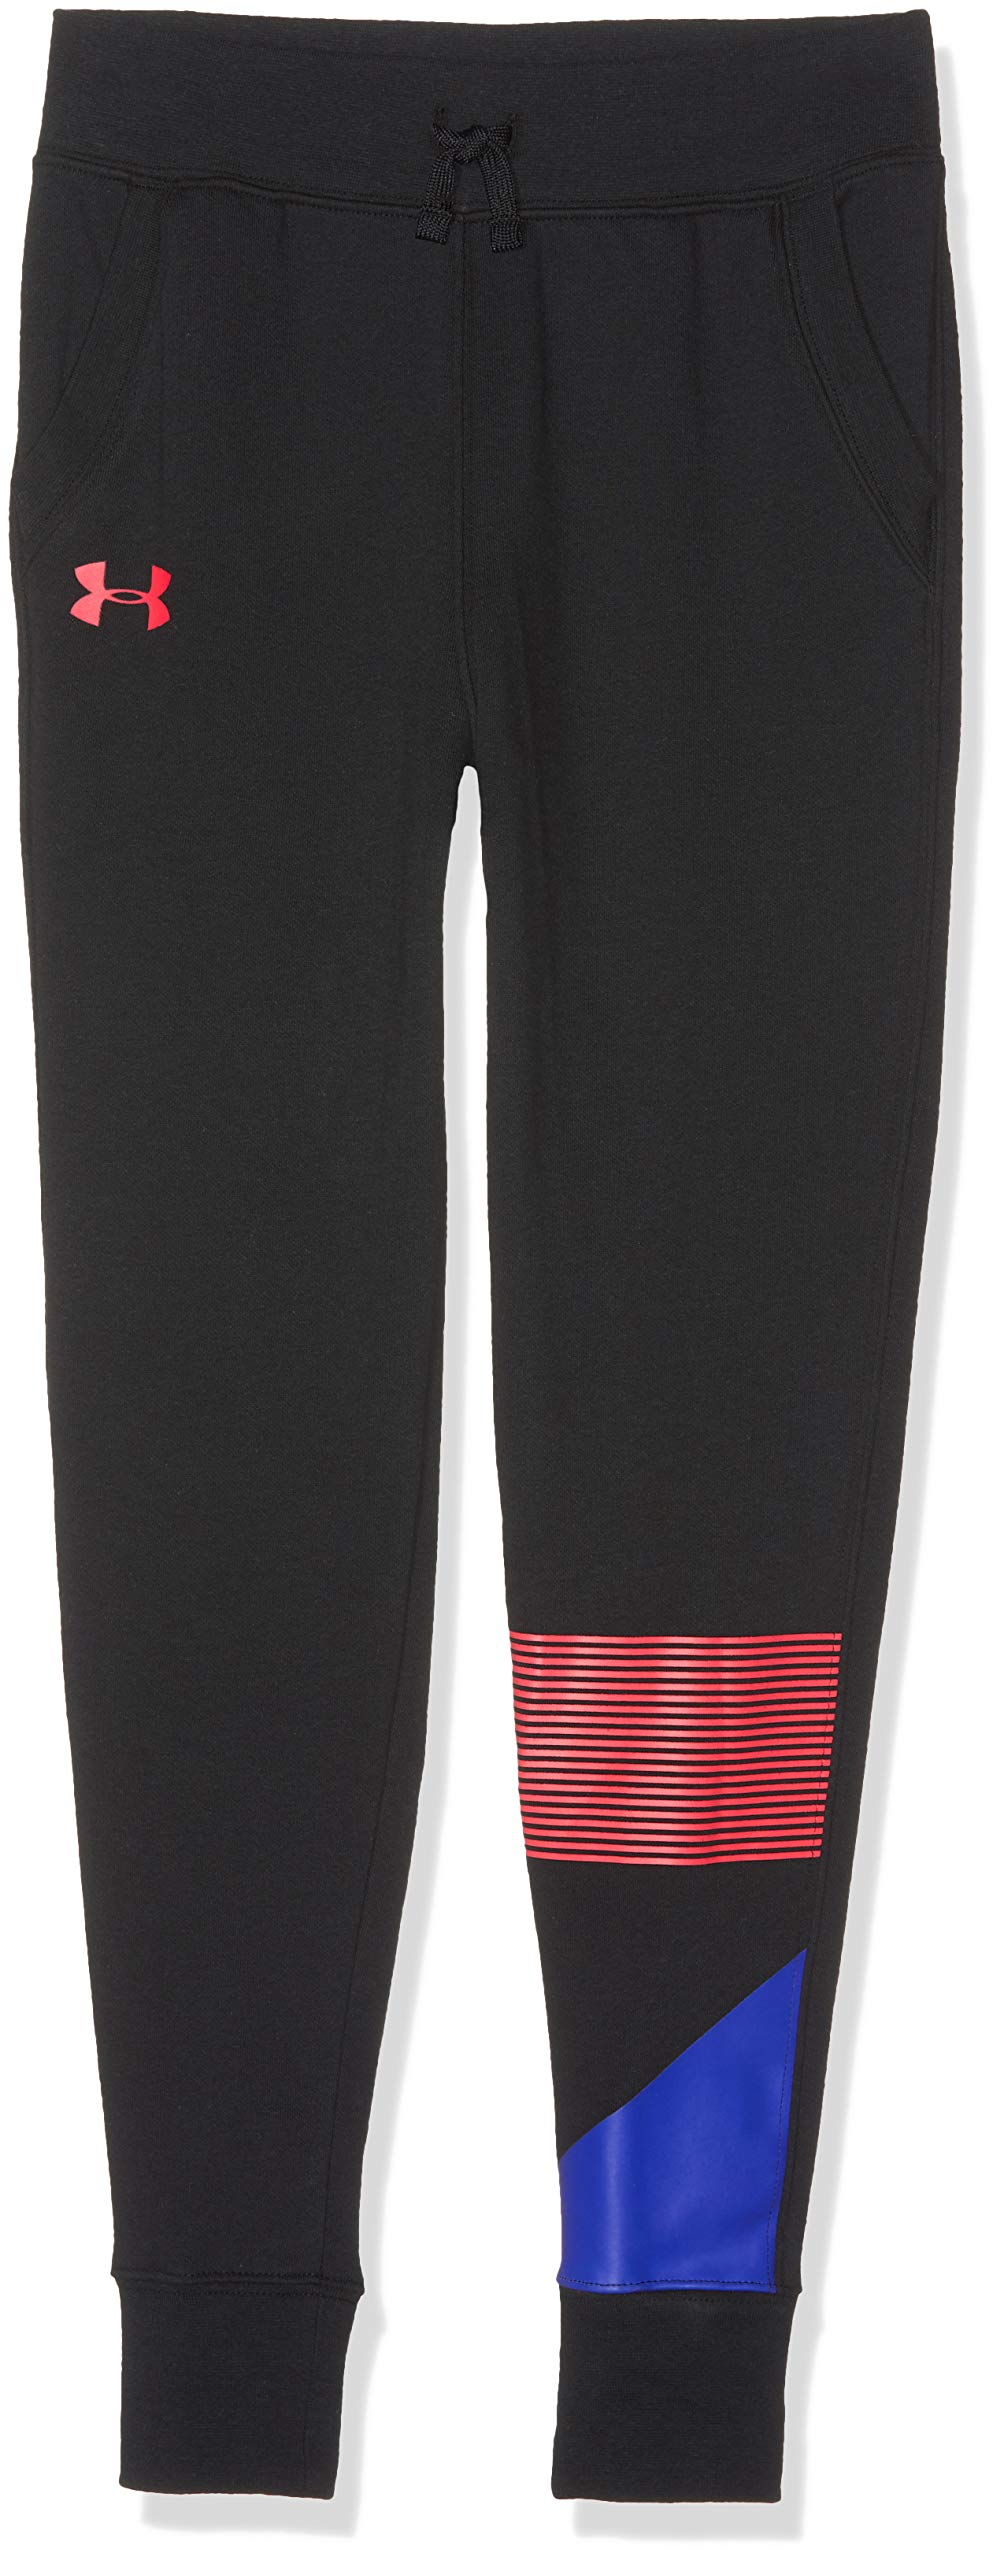 Under Armour Girls Rival Jogger, Black (002)/Penta Pink, Youth Large by Under Armour